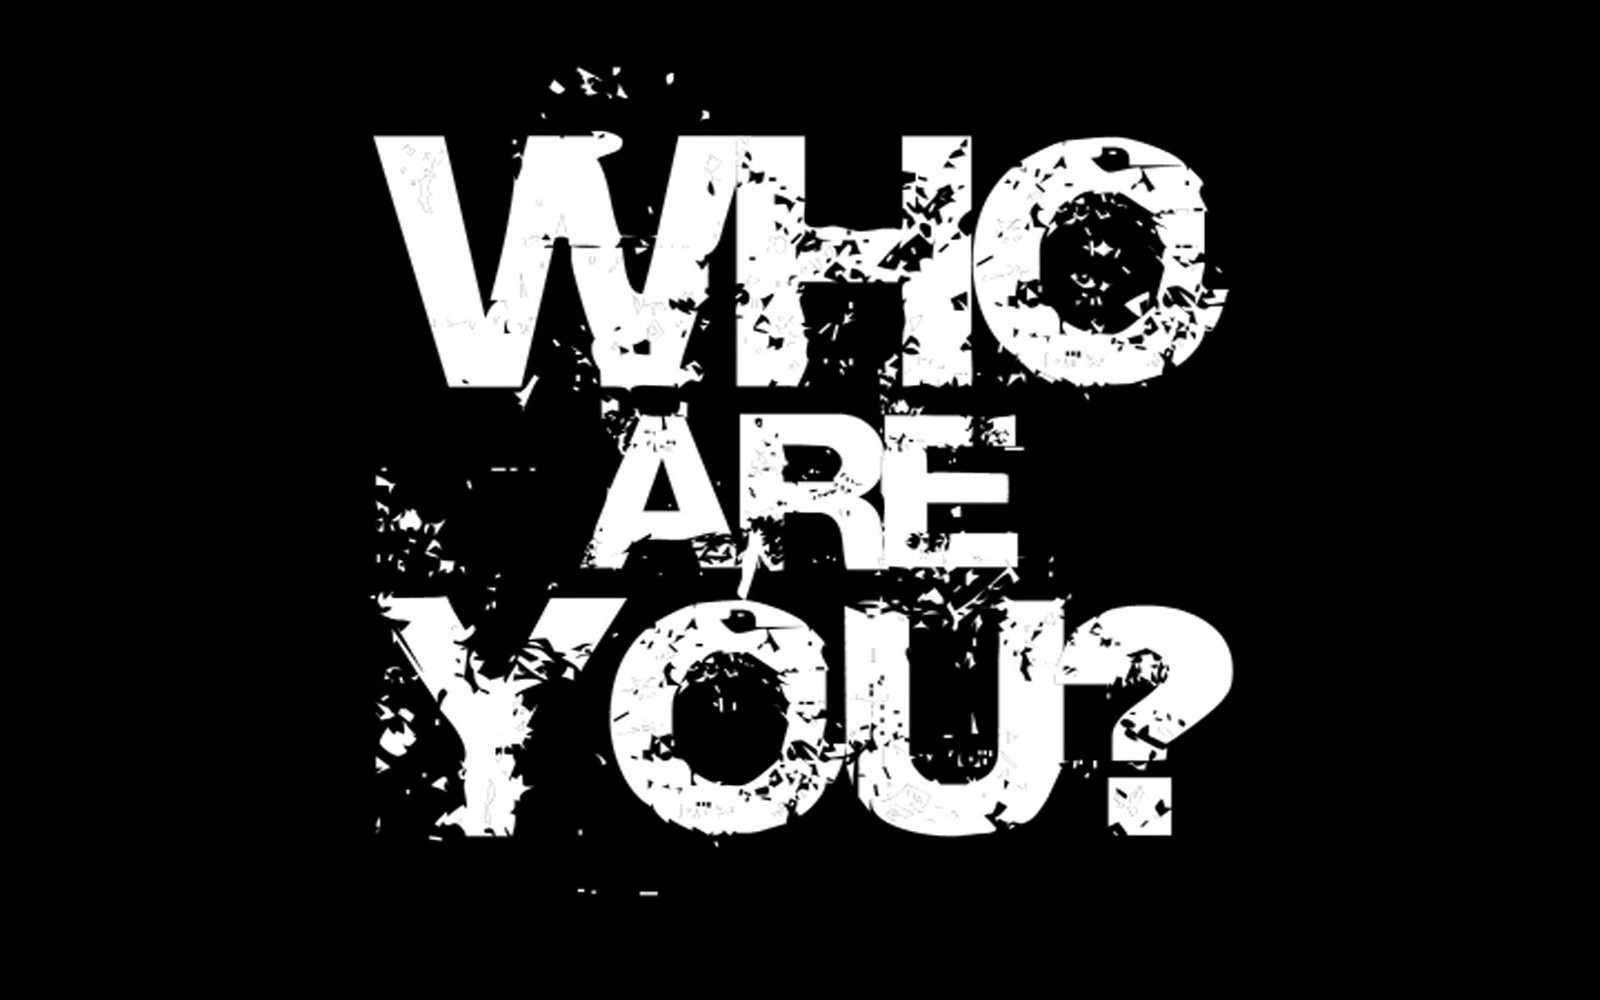 #EveryoneMatters—Who Are You?